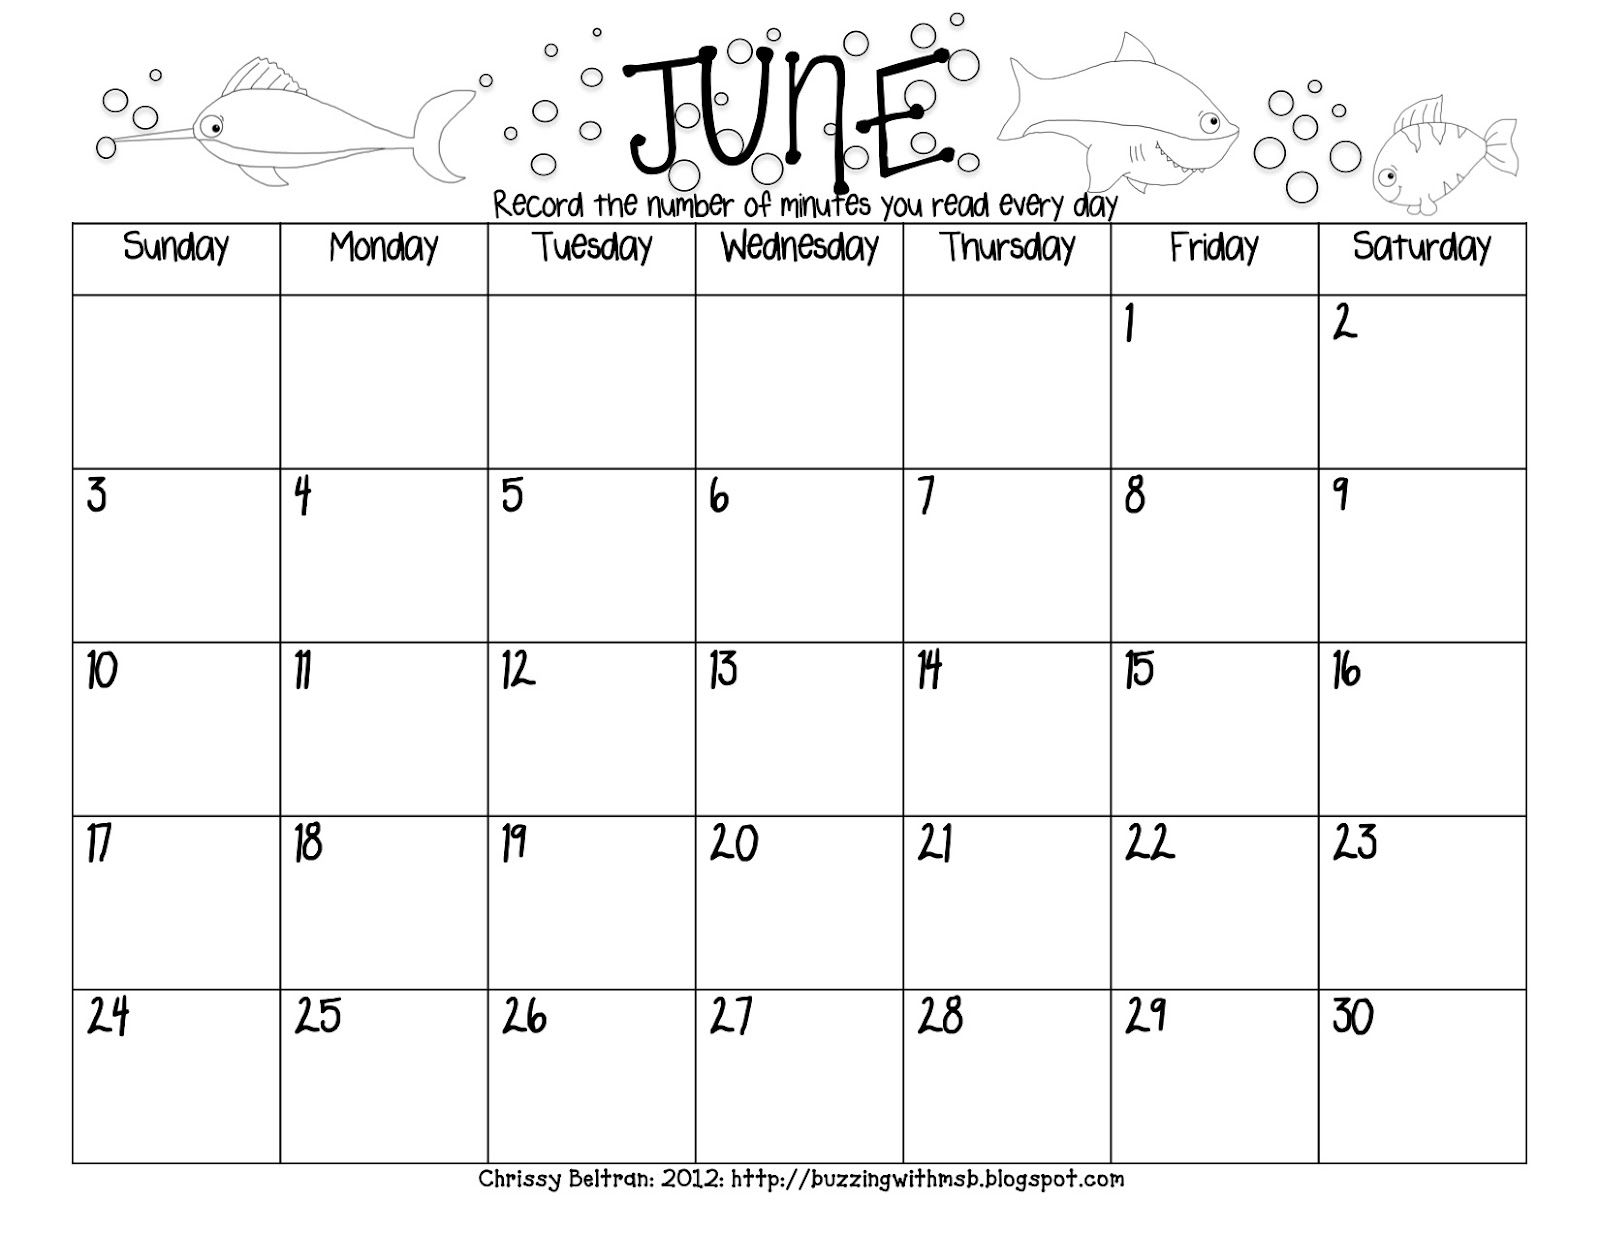 Monthly Reading Log Calendar : Summer reading log freebie calendar style june july